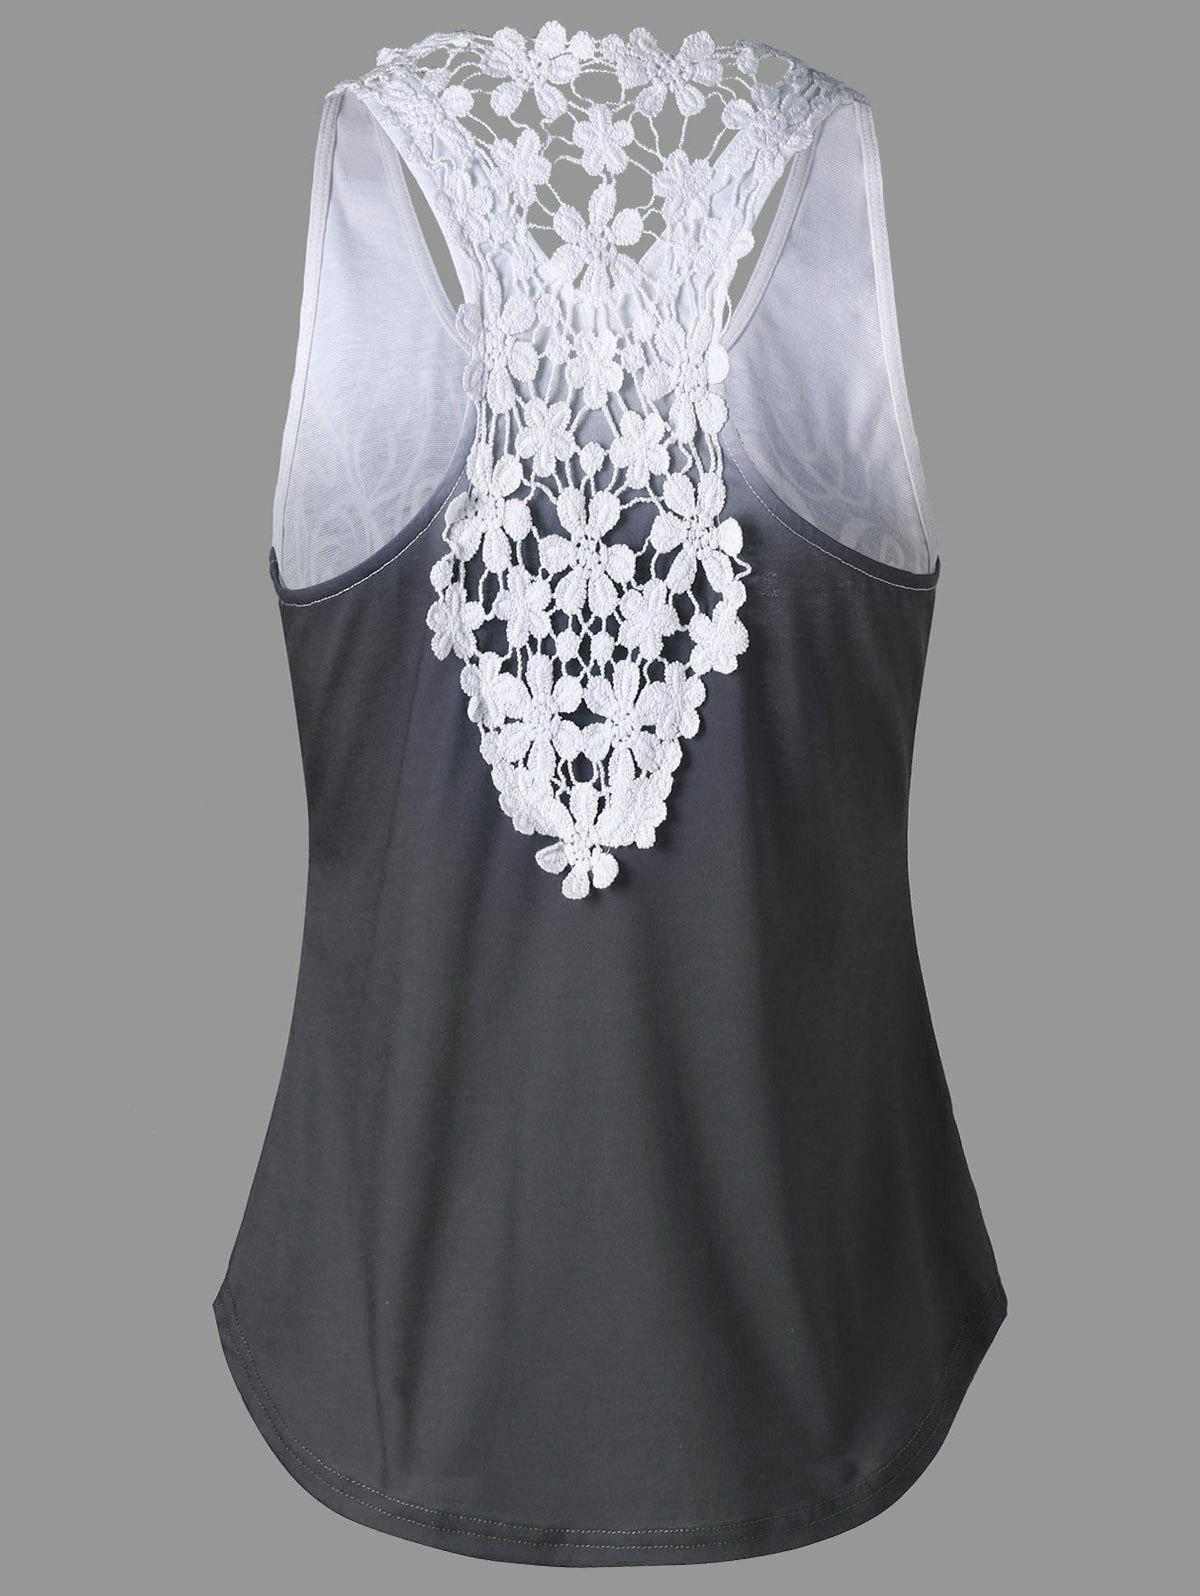 Printed Lace Insert Ombre Tank Top - MOUSE GREY XL